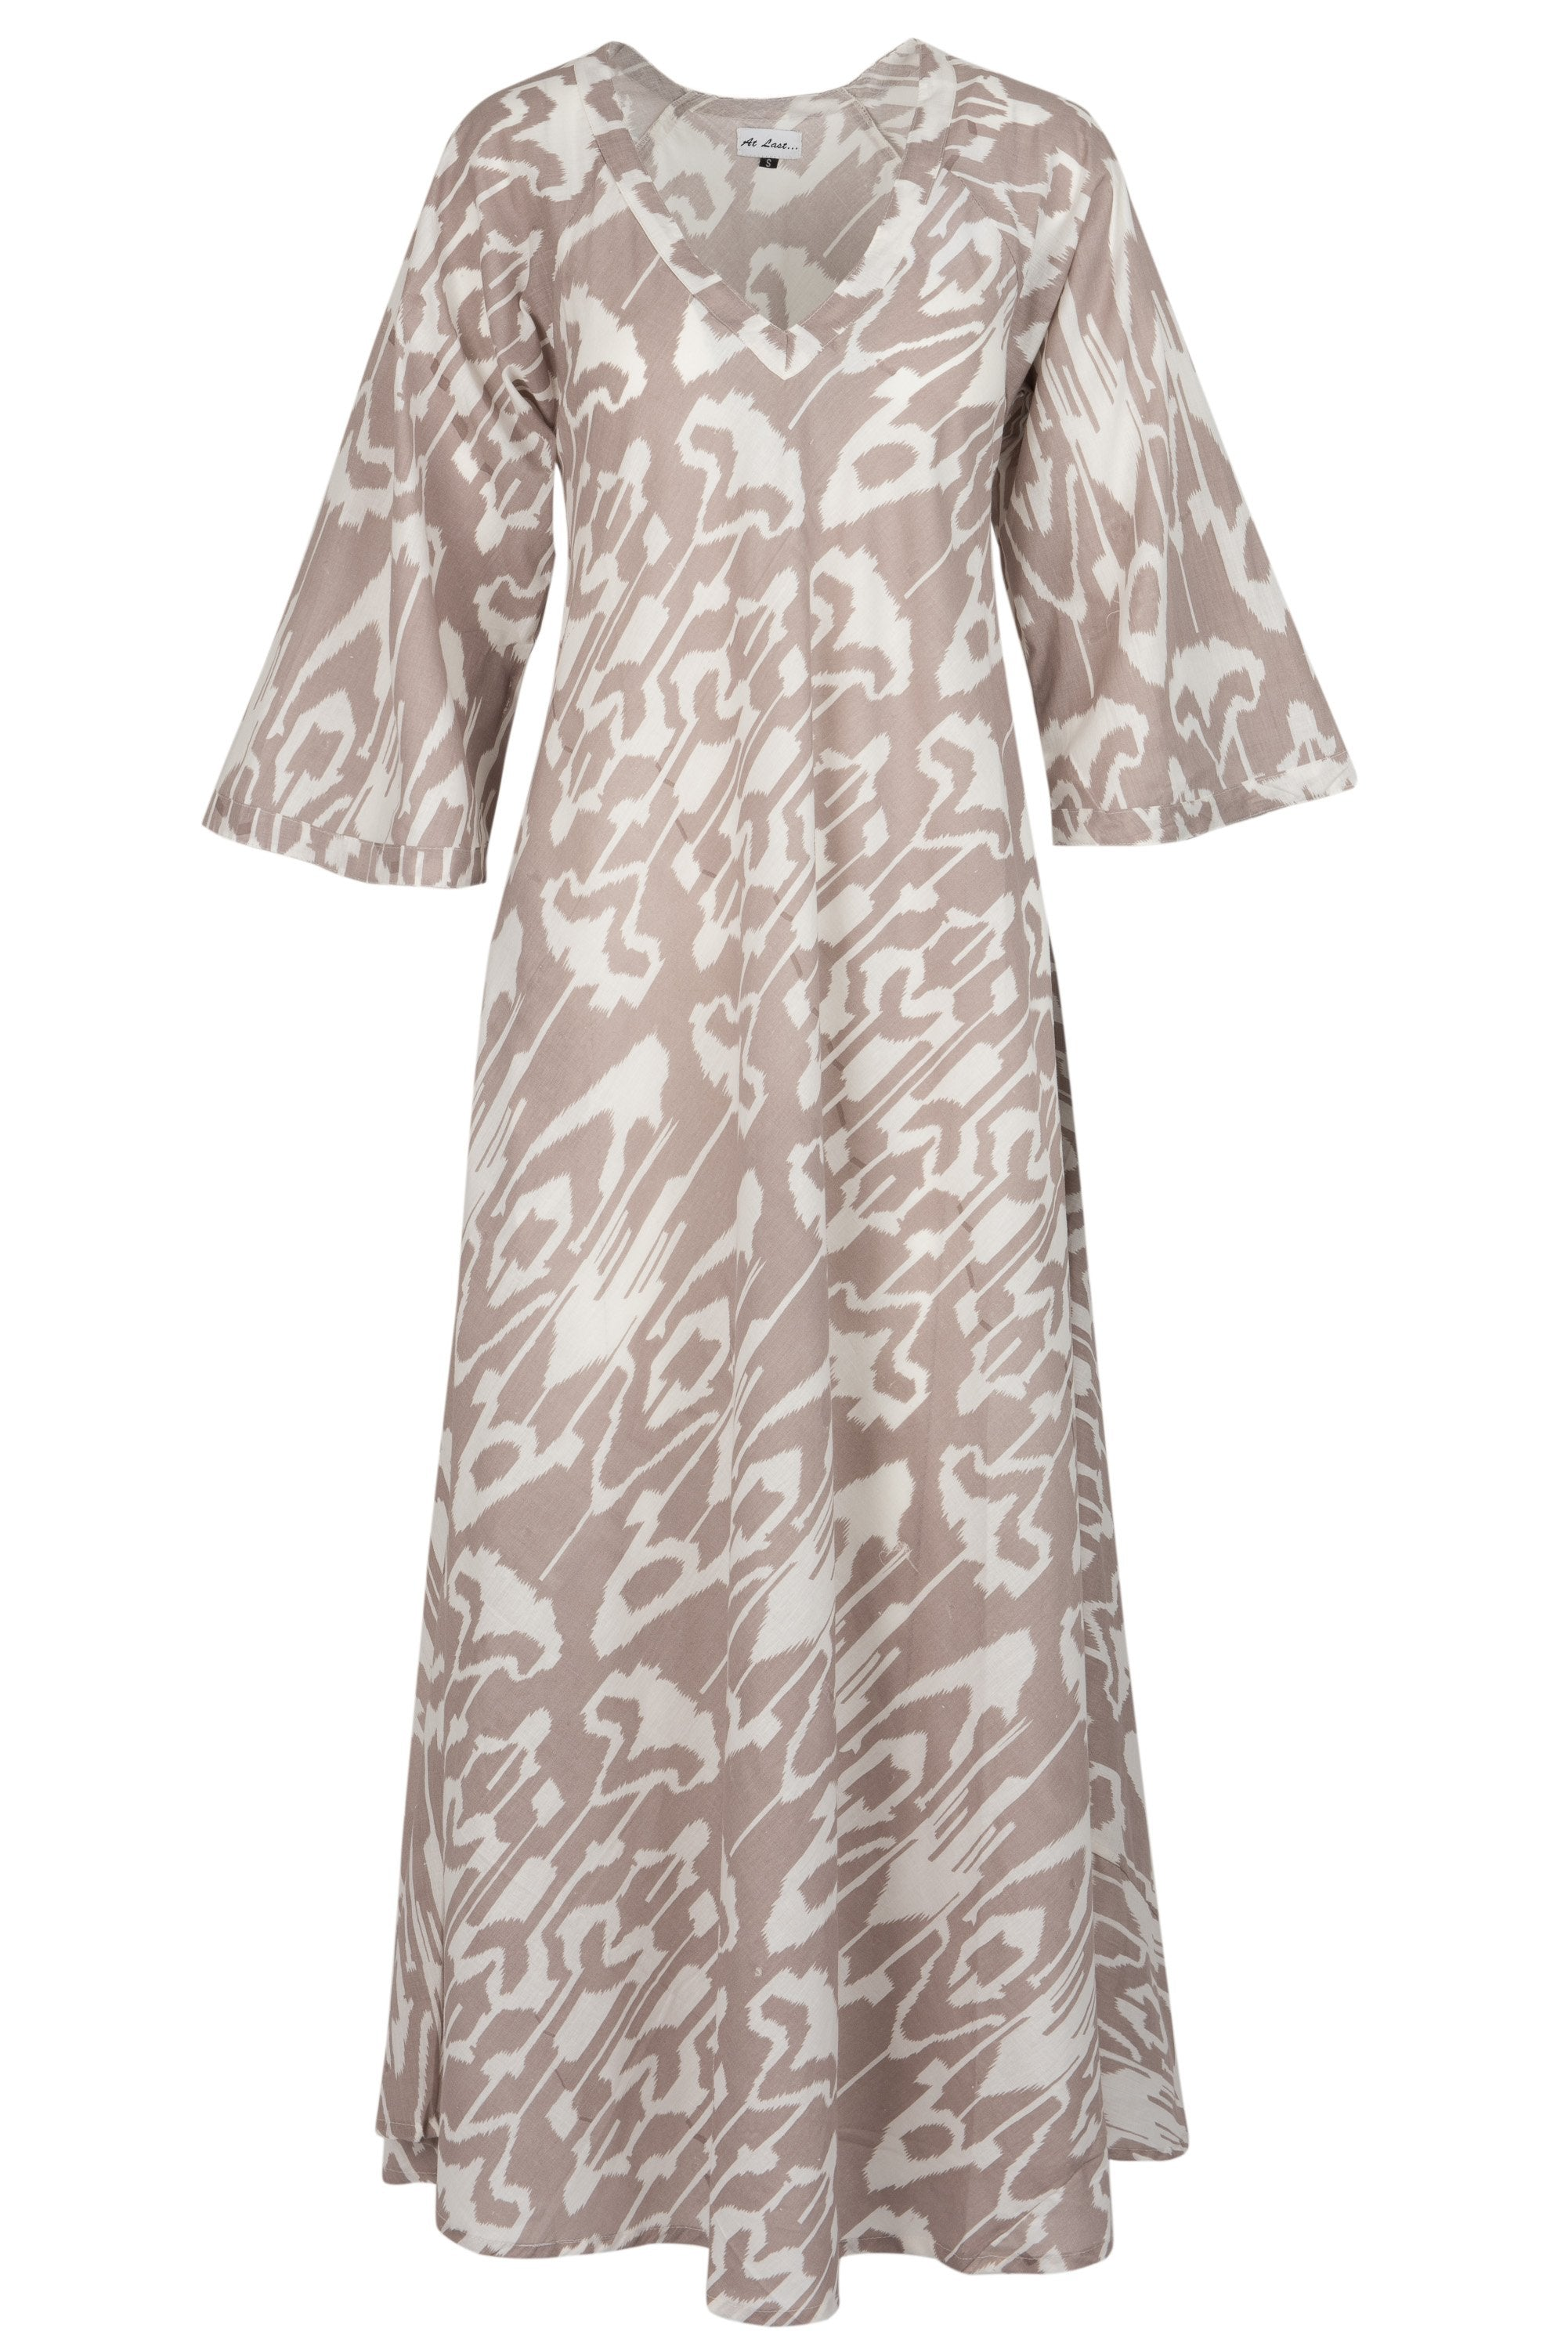 Anna Cotton Dress- Elephant Ikat